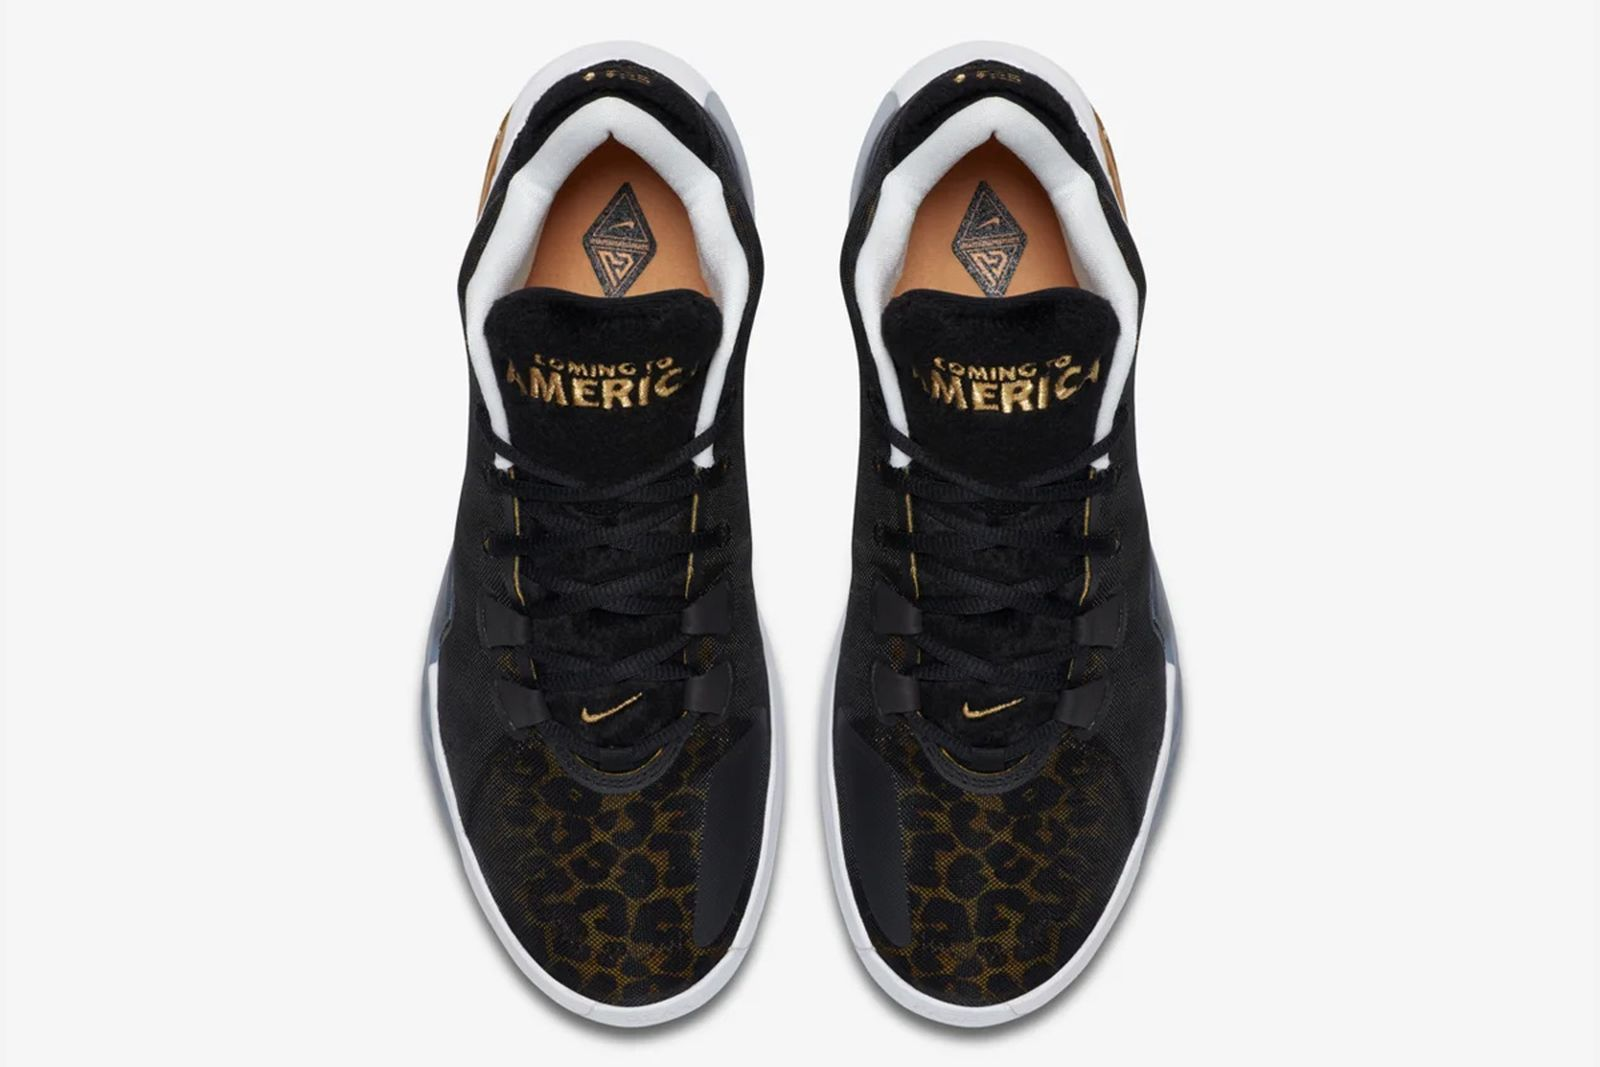 nike zoom freak 1 coming to america release date price official giannis antetokounmpo